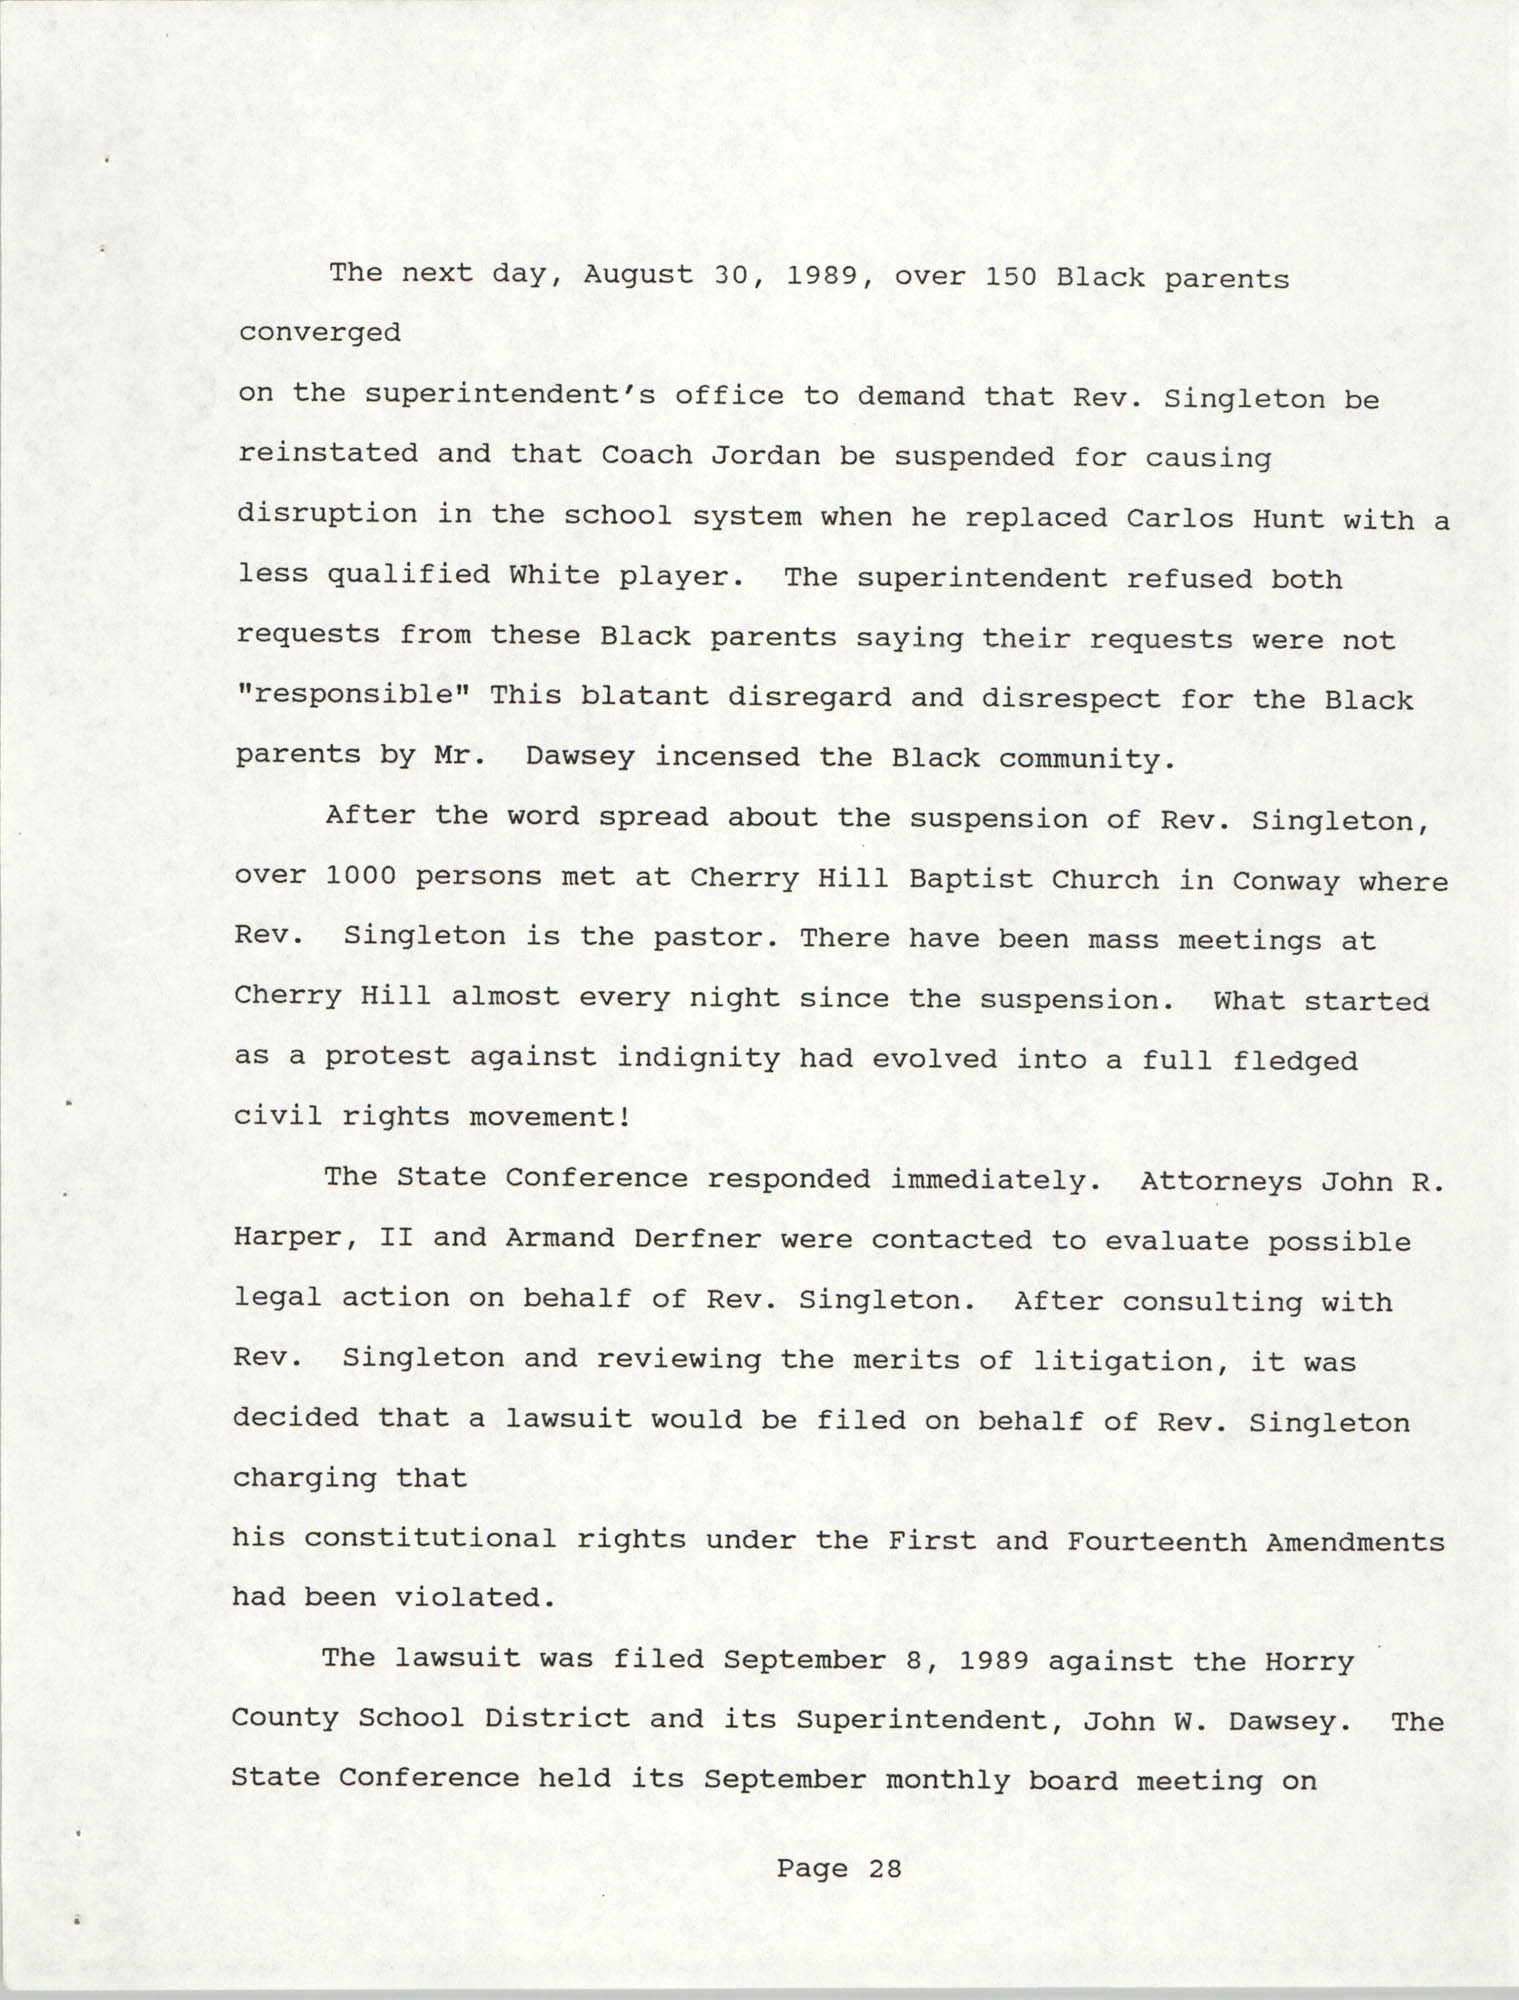 South Carolina Conference of Branches of the NAACP, 1990 Annual Report, Part Two, Page 28